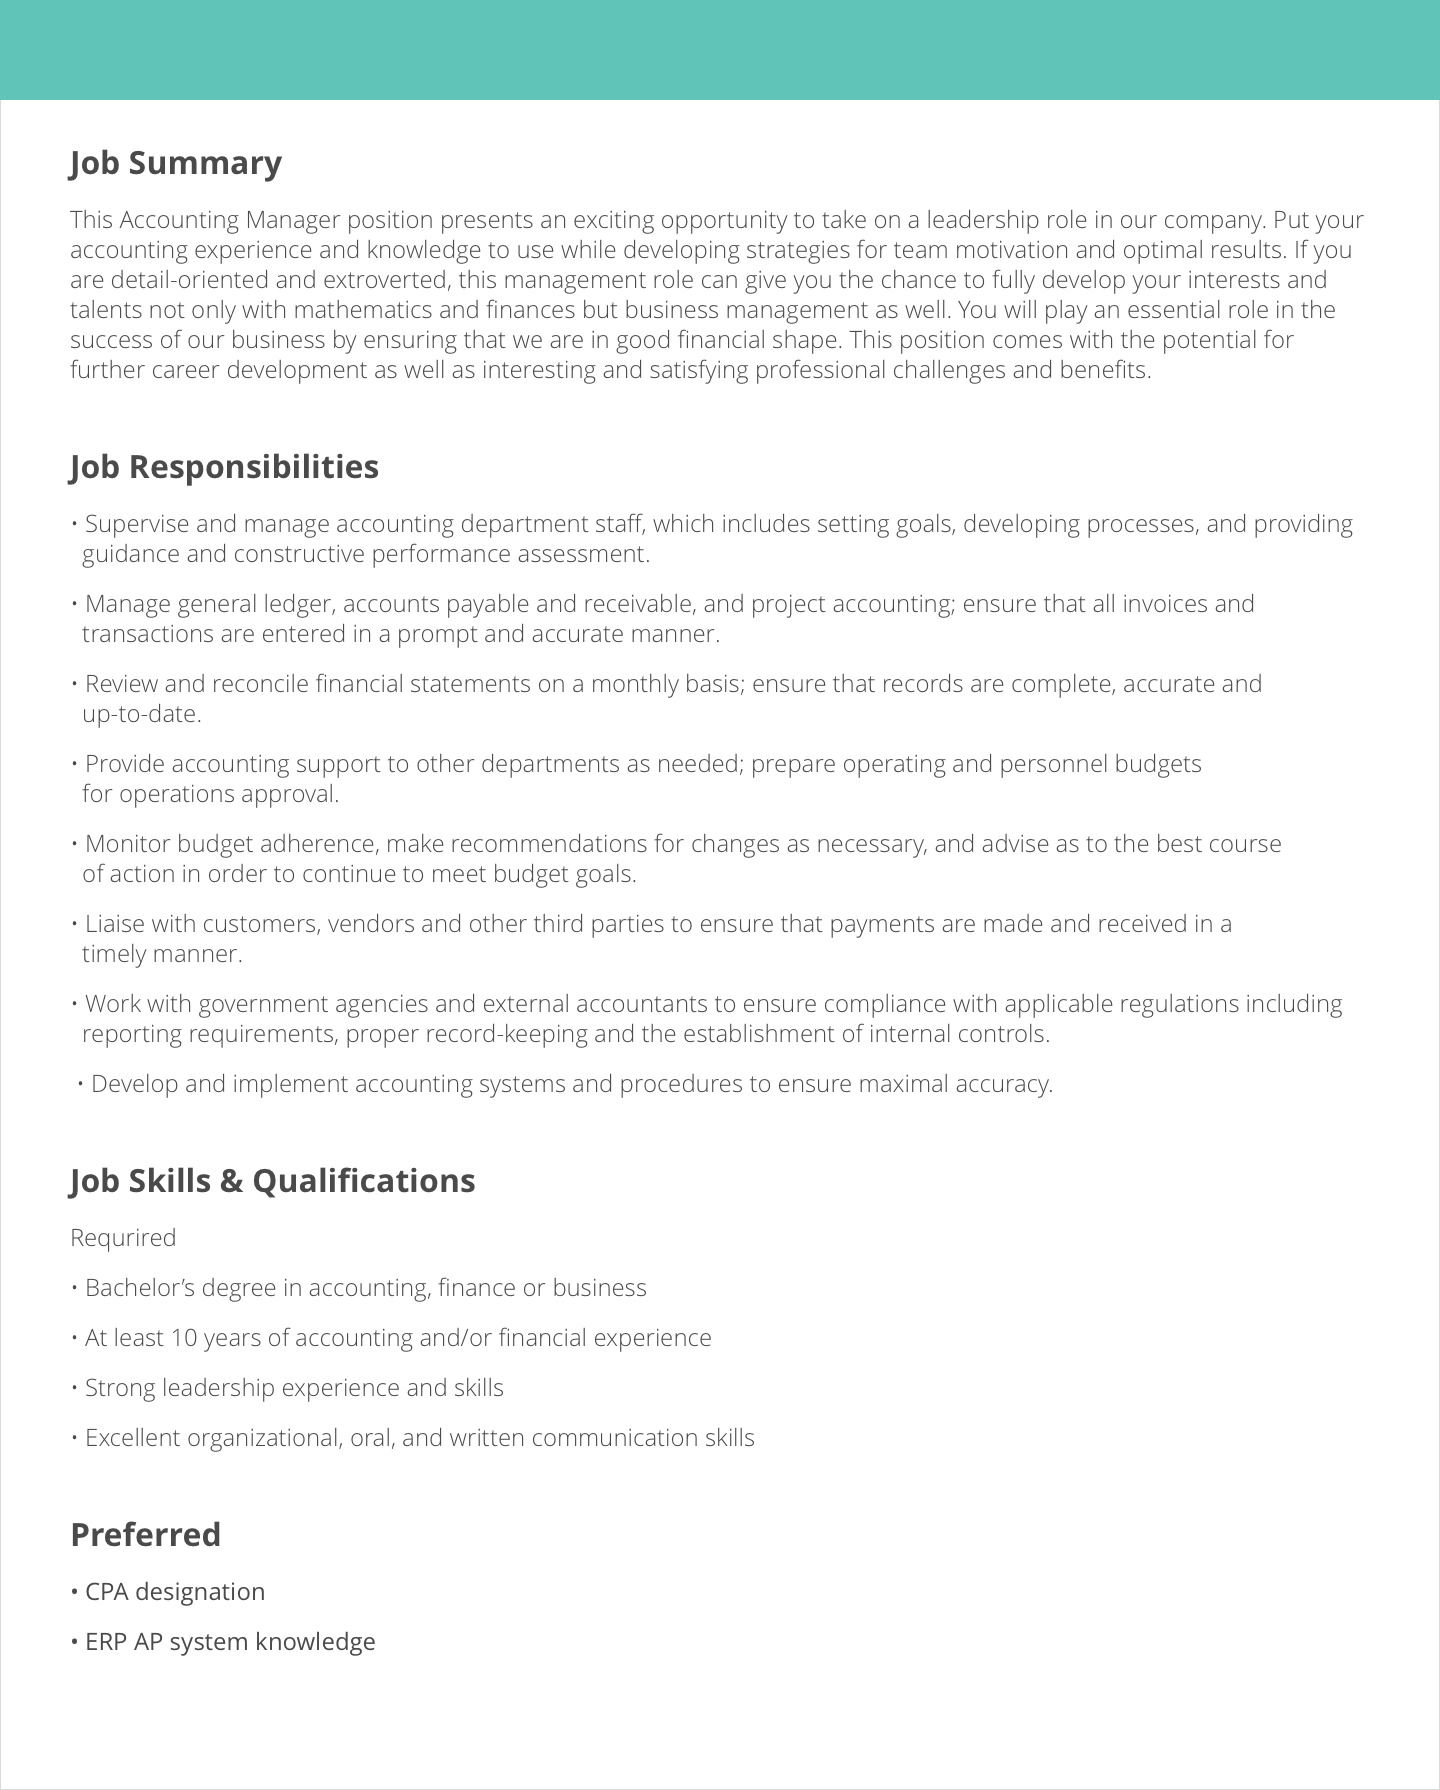 Sales Job Description Templates  Samples  LiveCareer